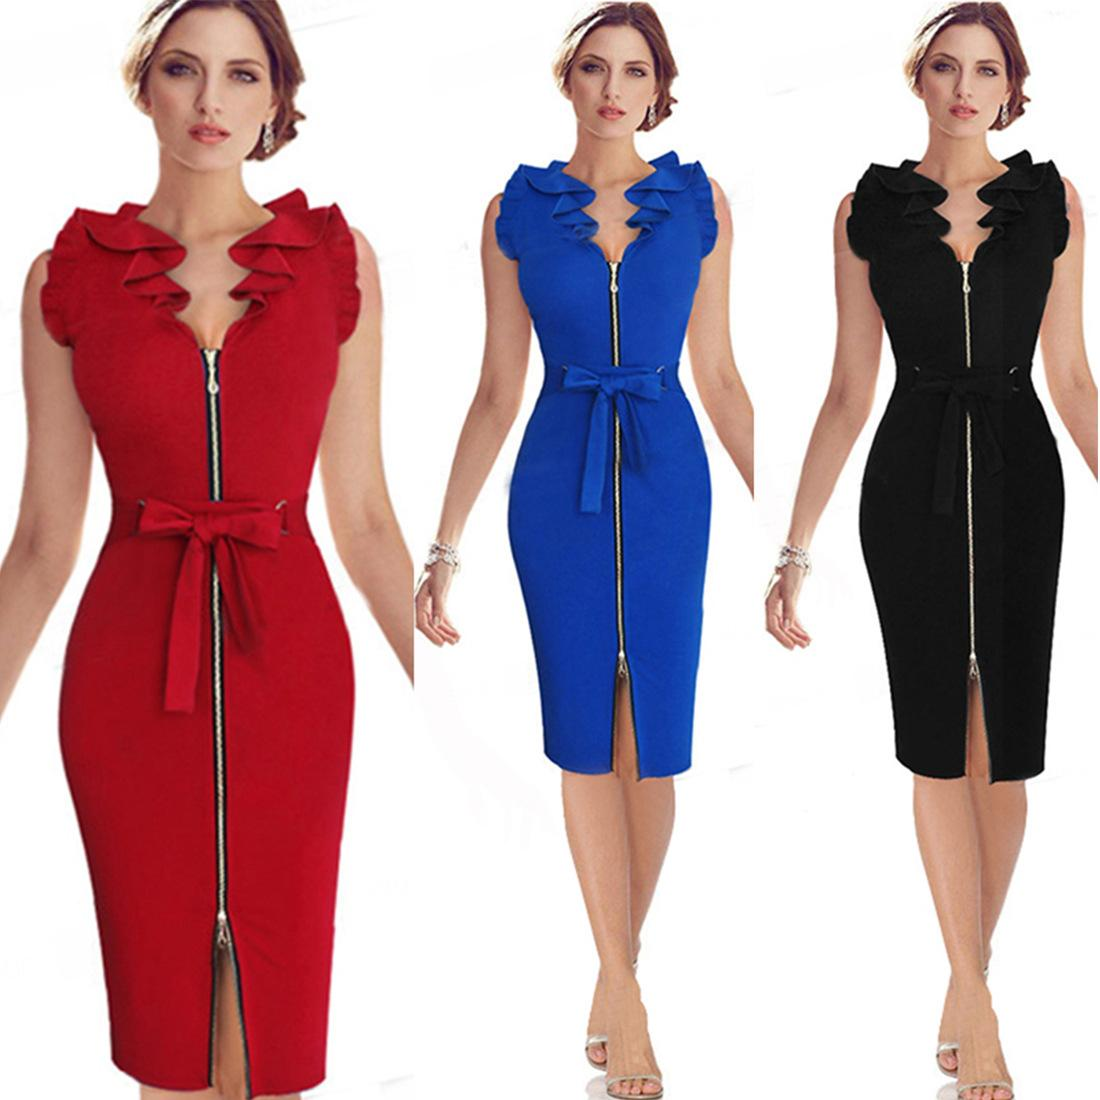 4142d1a5d46 2019 Womens Bodice Work Office Dresses Summer Ruffle Neck Belted Bow ...